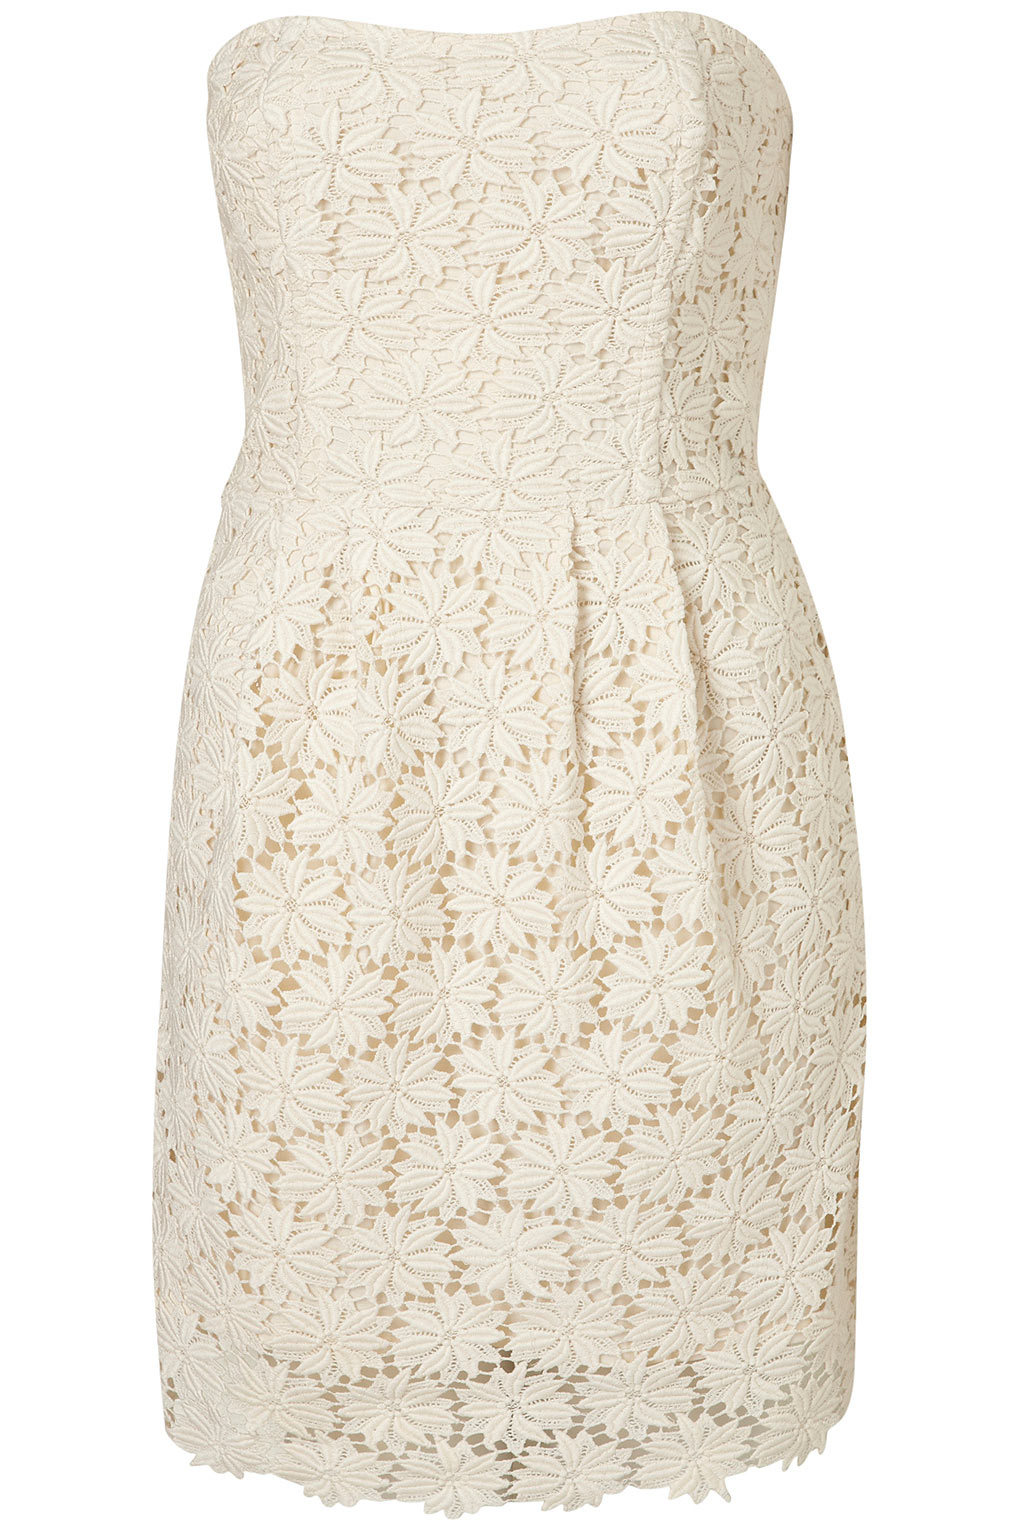 Romantic-lace-little-white-dress-spring-summer-wedding-reception.full